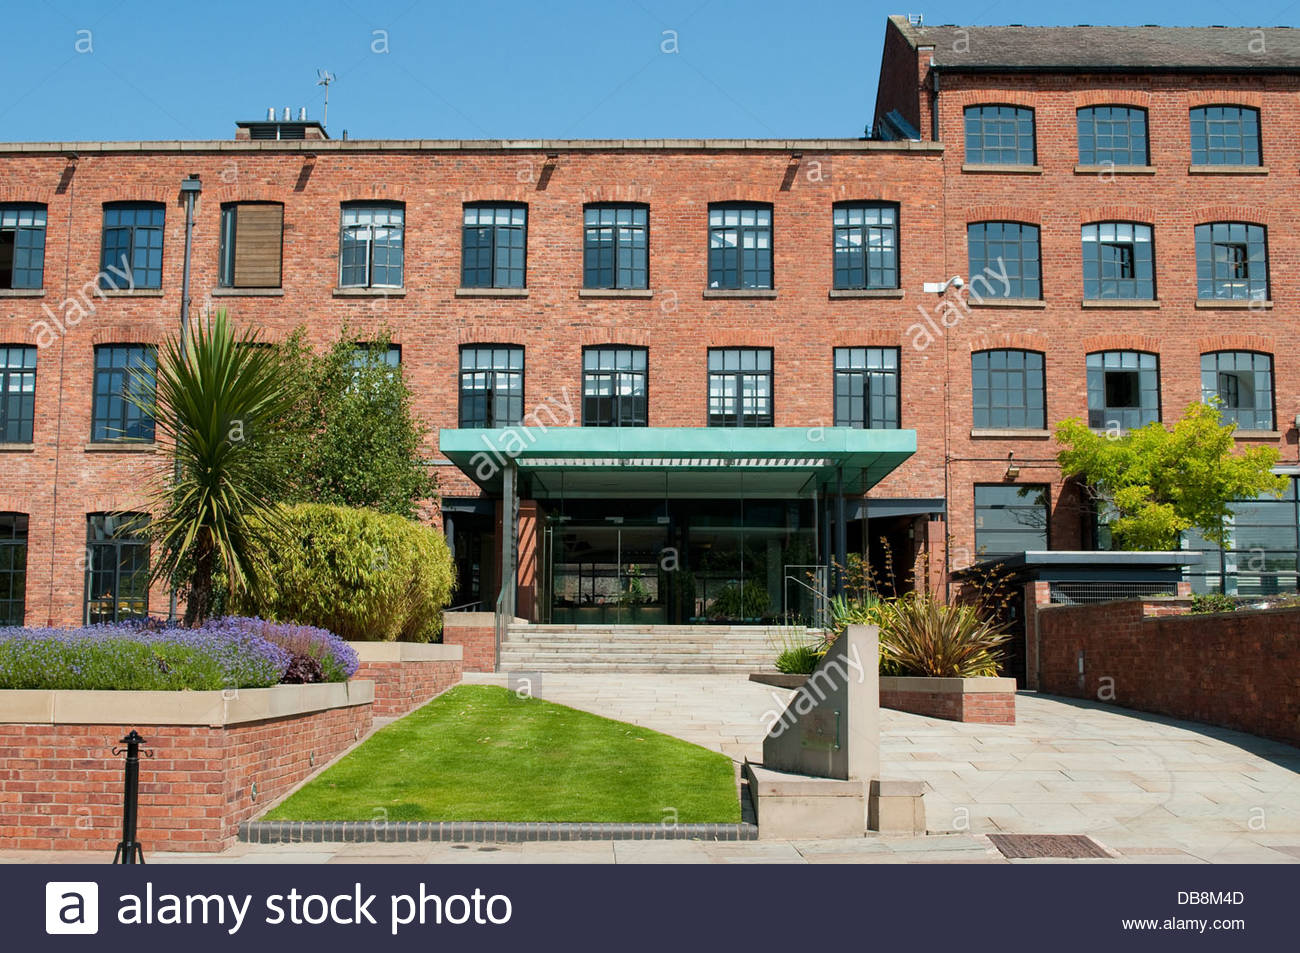 Commercial property, Castlefield, Manchester, UK - Stock Image